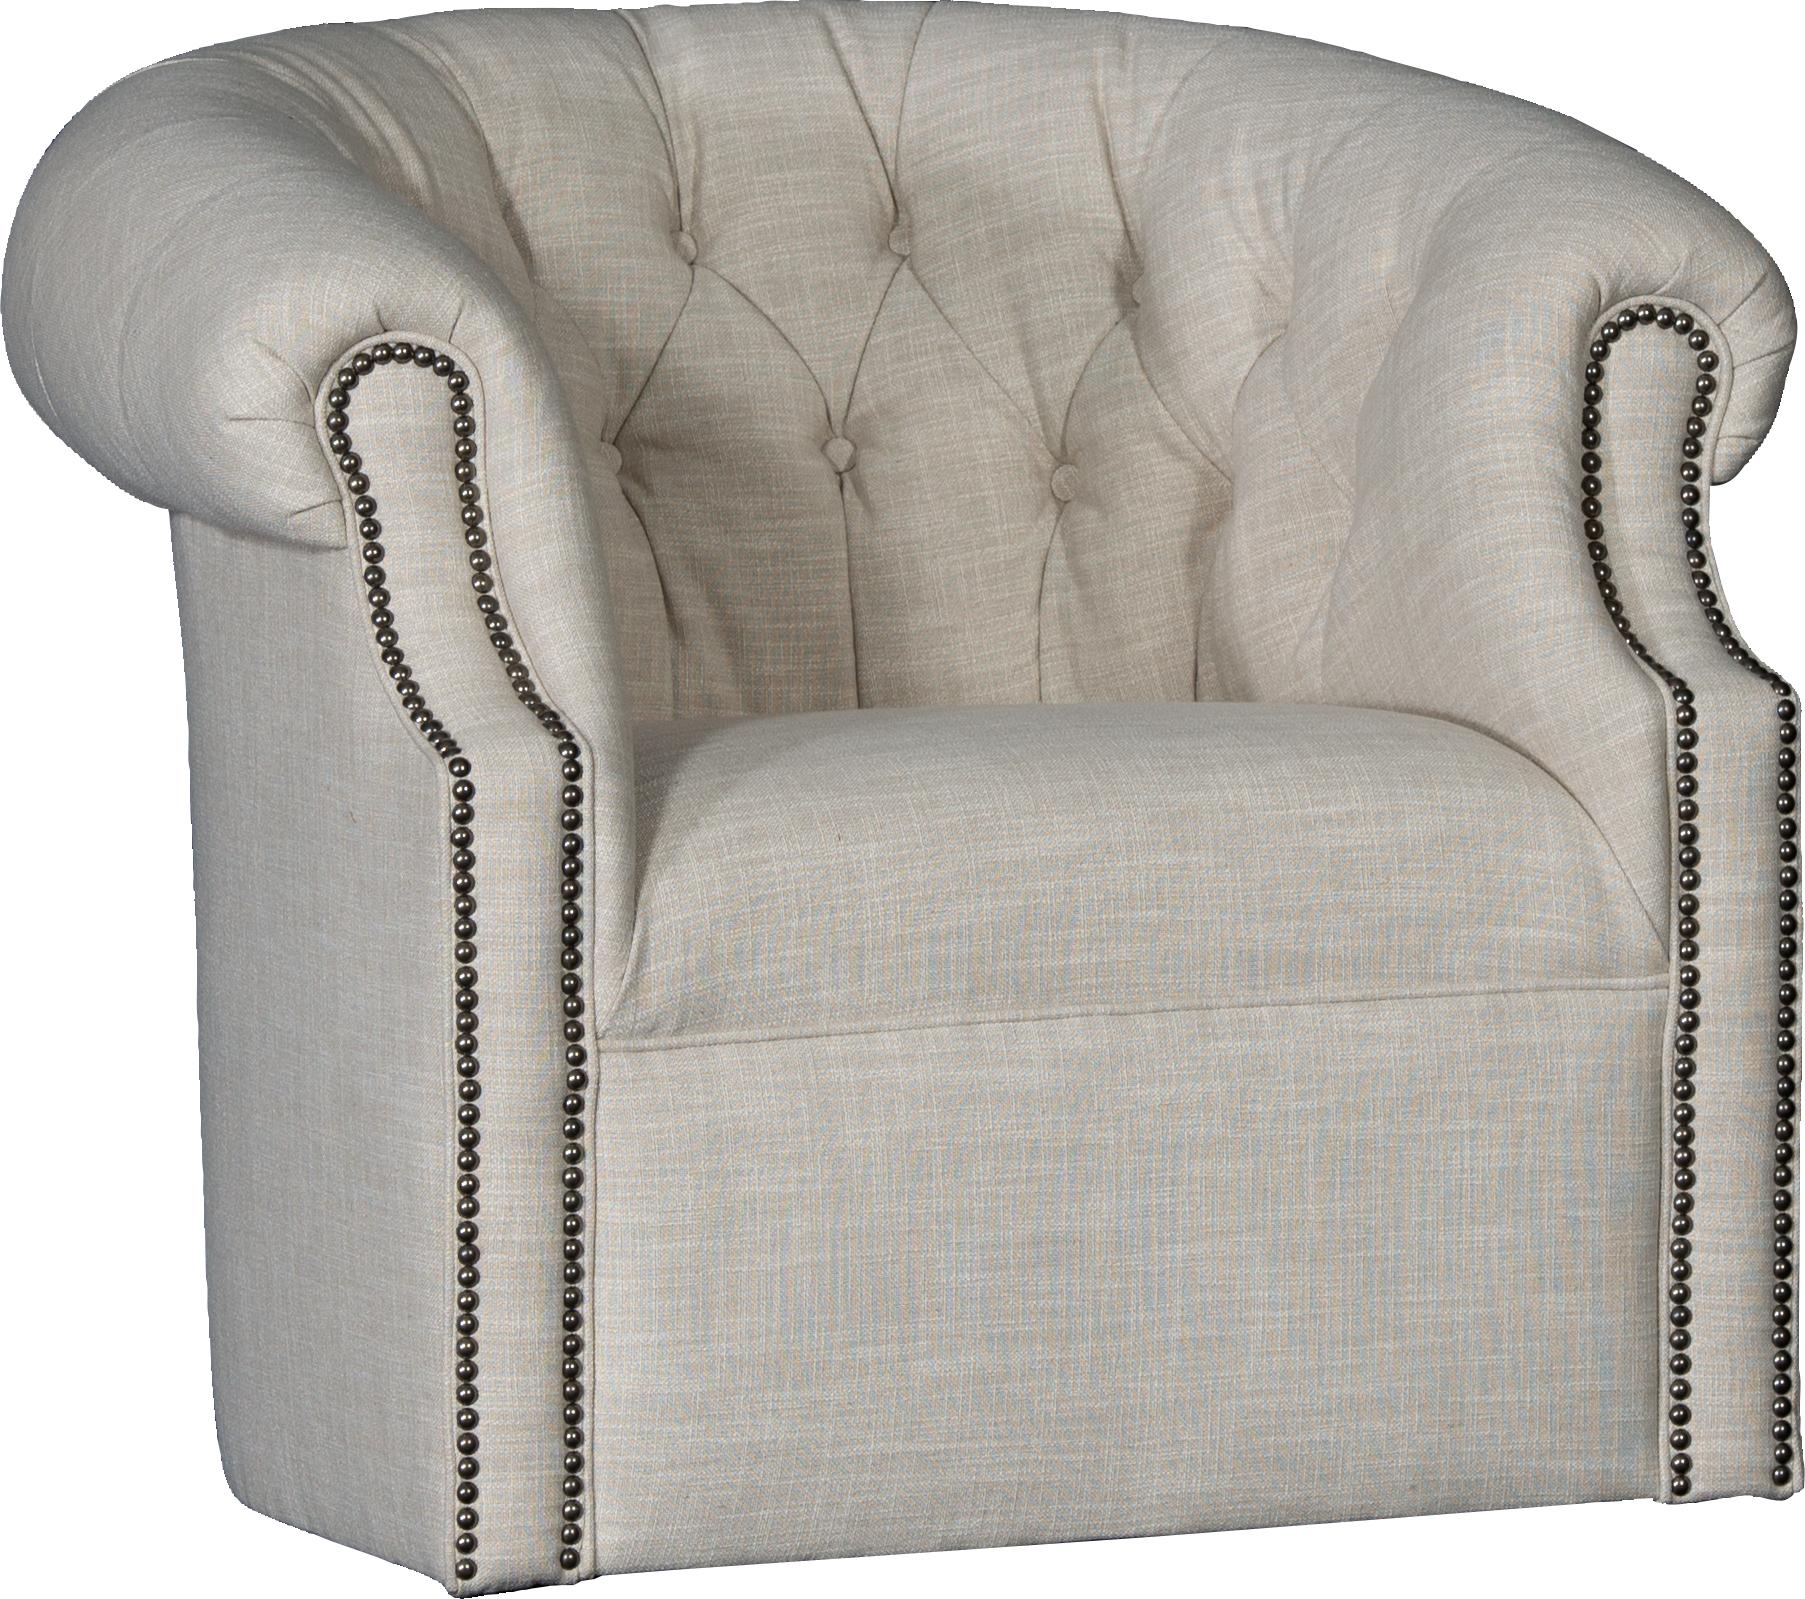 8220 Swivel Chair by Mayo at Miller Waldrop Furniture and Decor